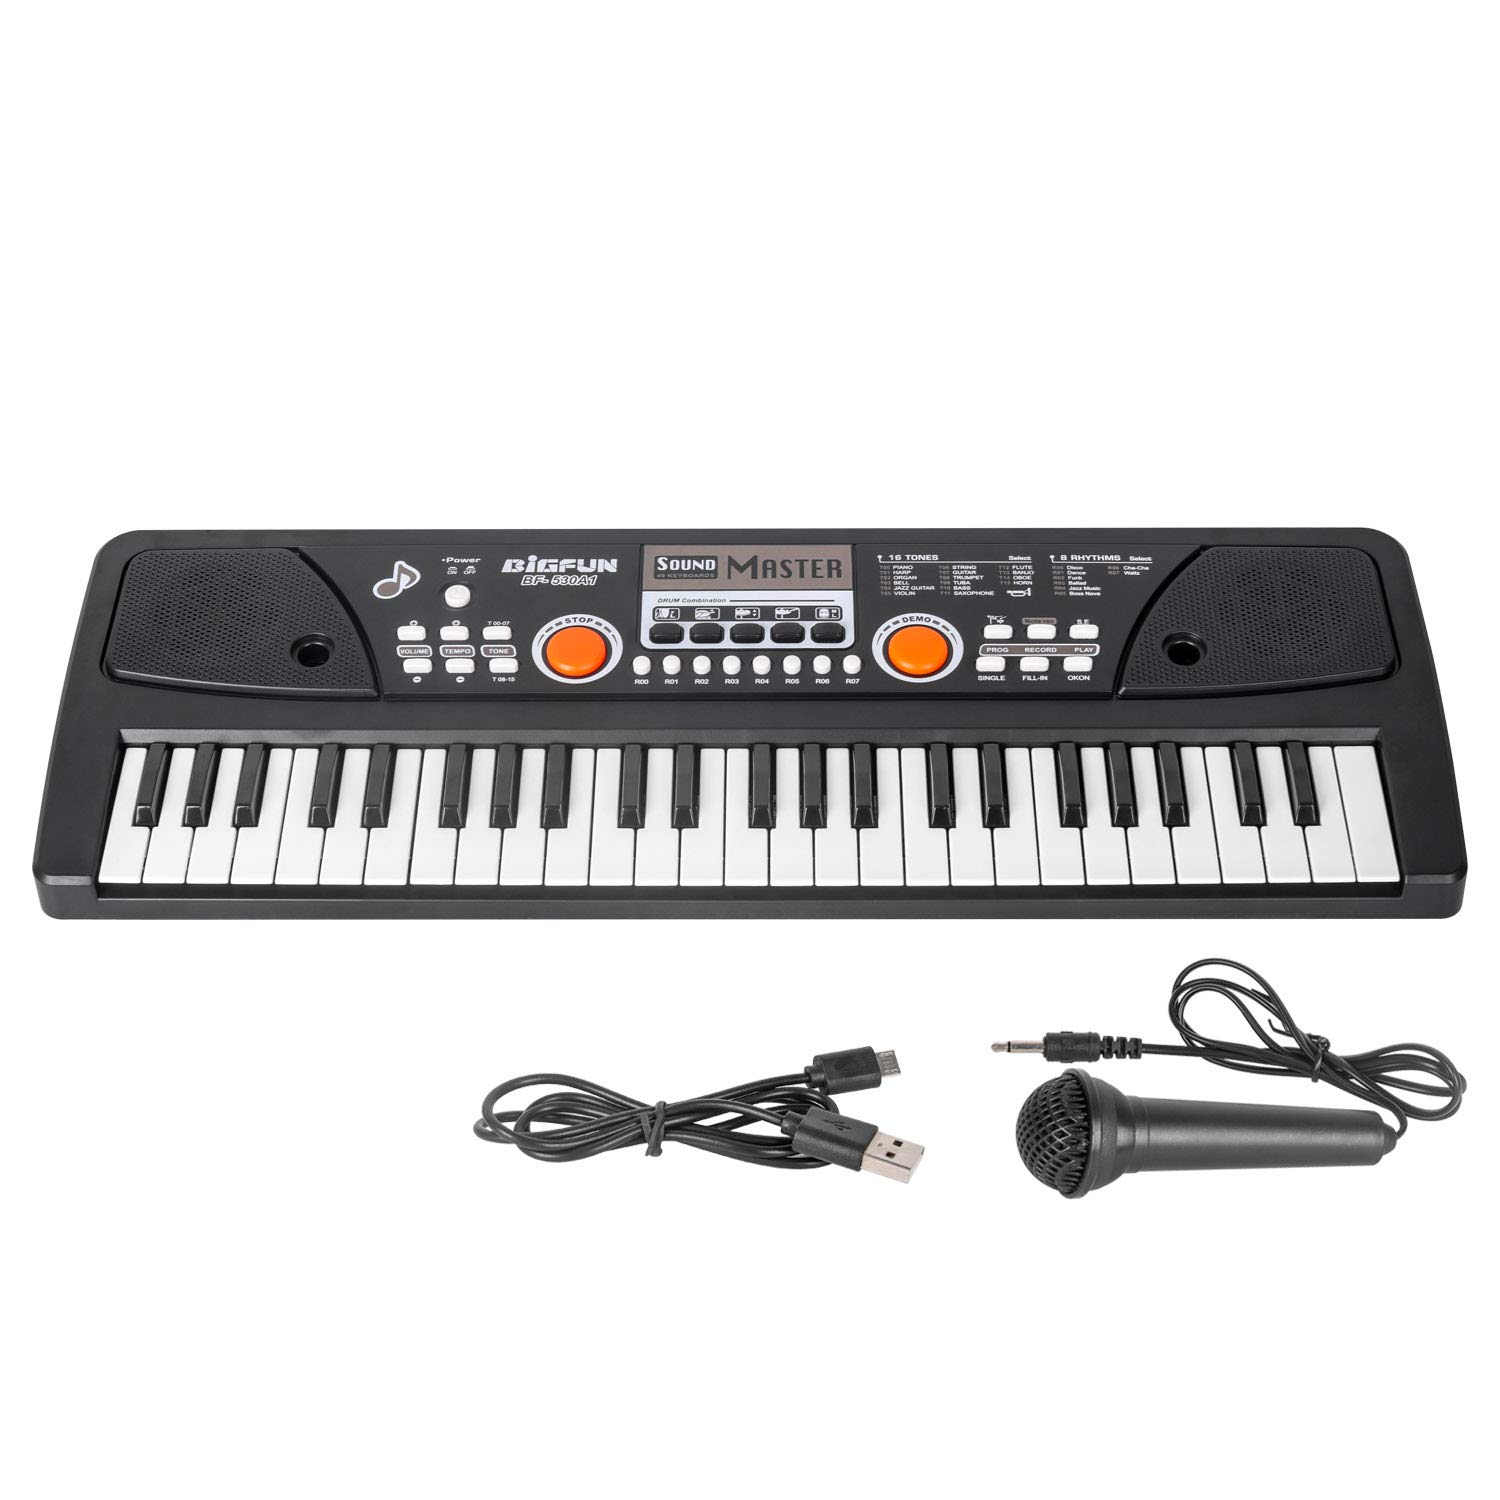 Kids Keyboard Piano, 49 Key Music Piano Keyboard, Portable Electronic Keyboard with Microphone for Kids Adult Beginners